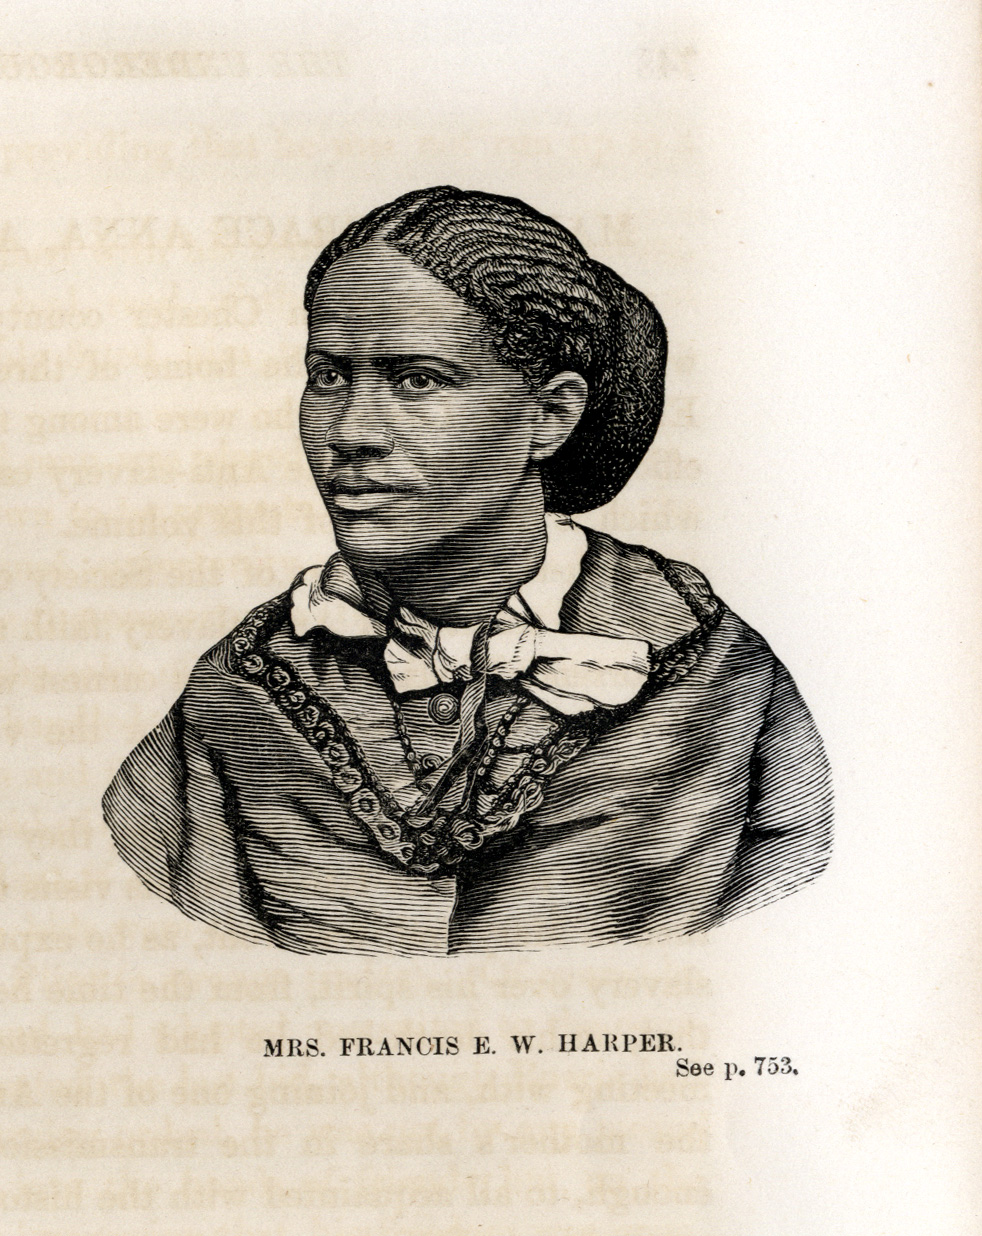 illustration of Mrs. Francis E. W. Harper from Underground Railroad